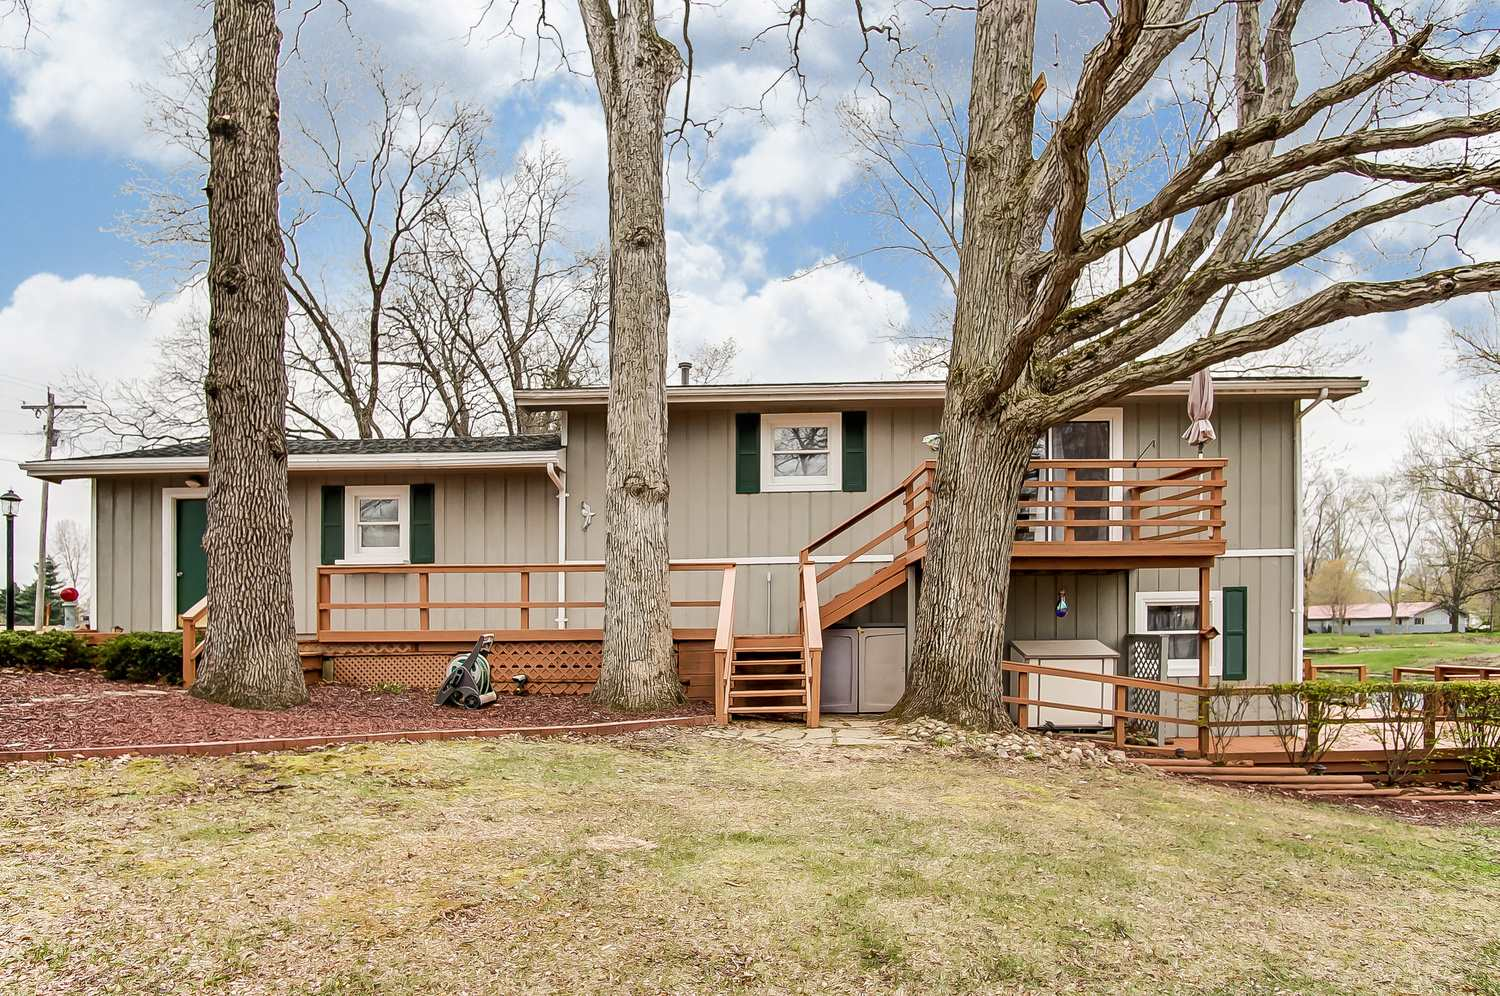 5920 N 1200 E, Orland, IN 46776